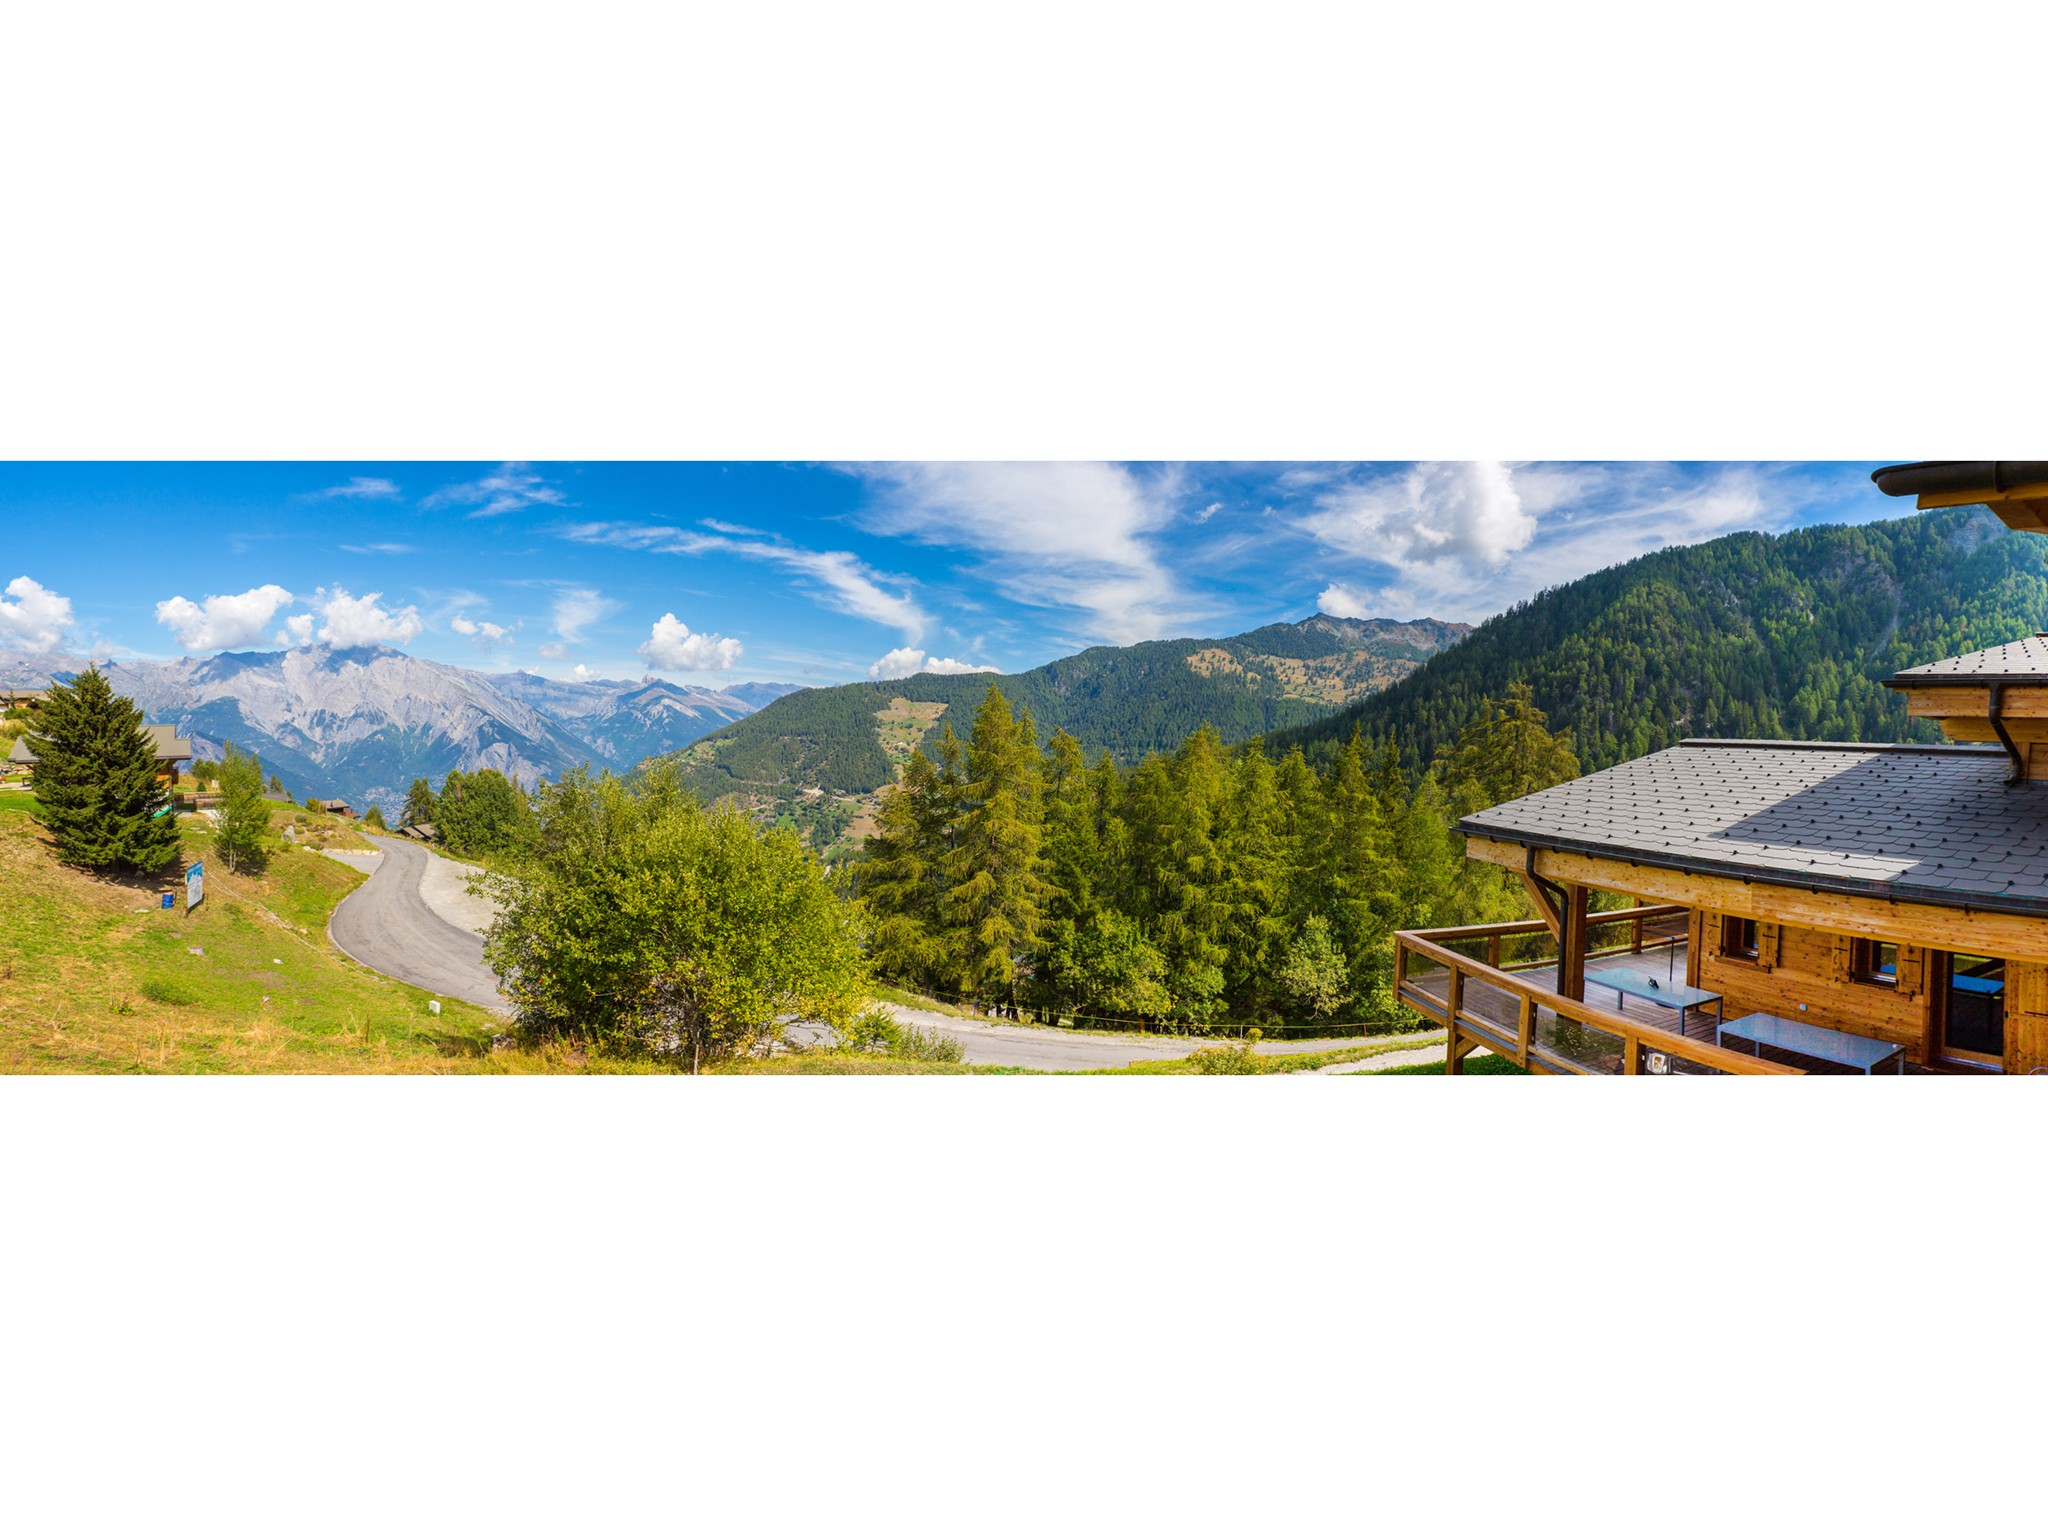 Chalet Flocon de Neige - panoramic view